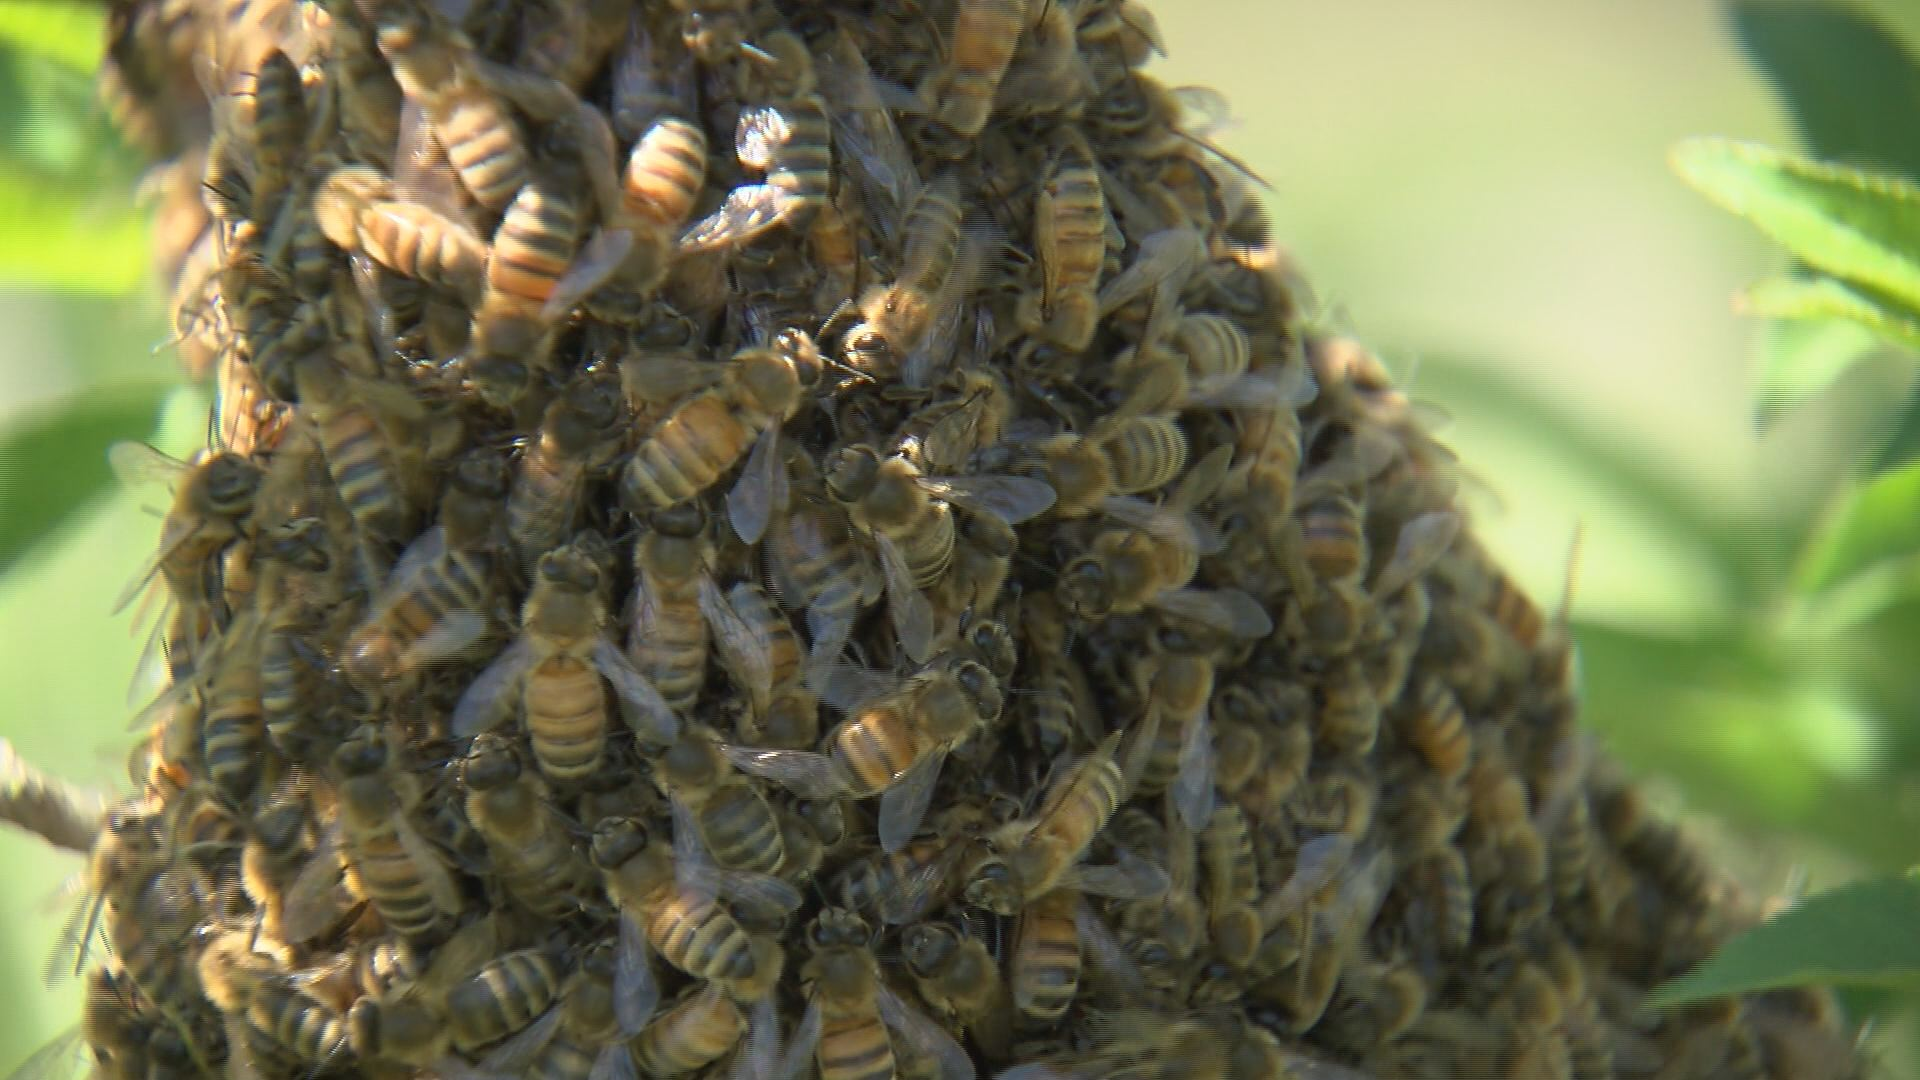 bees_194685